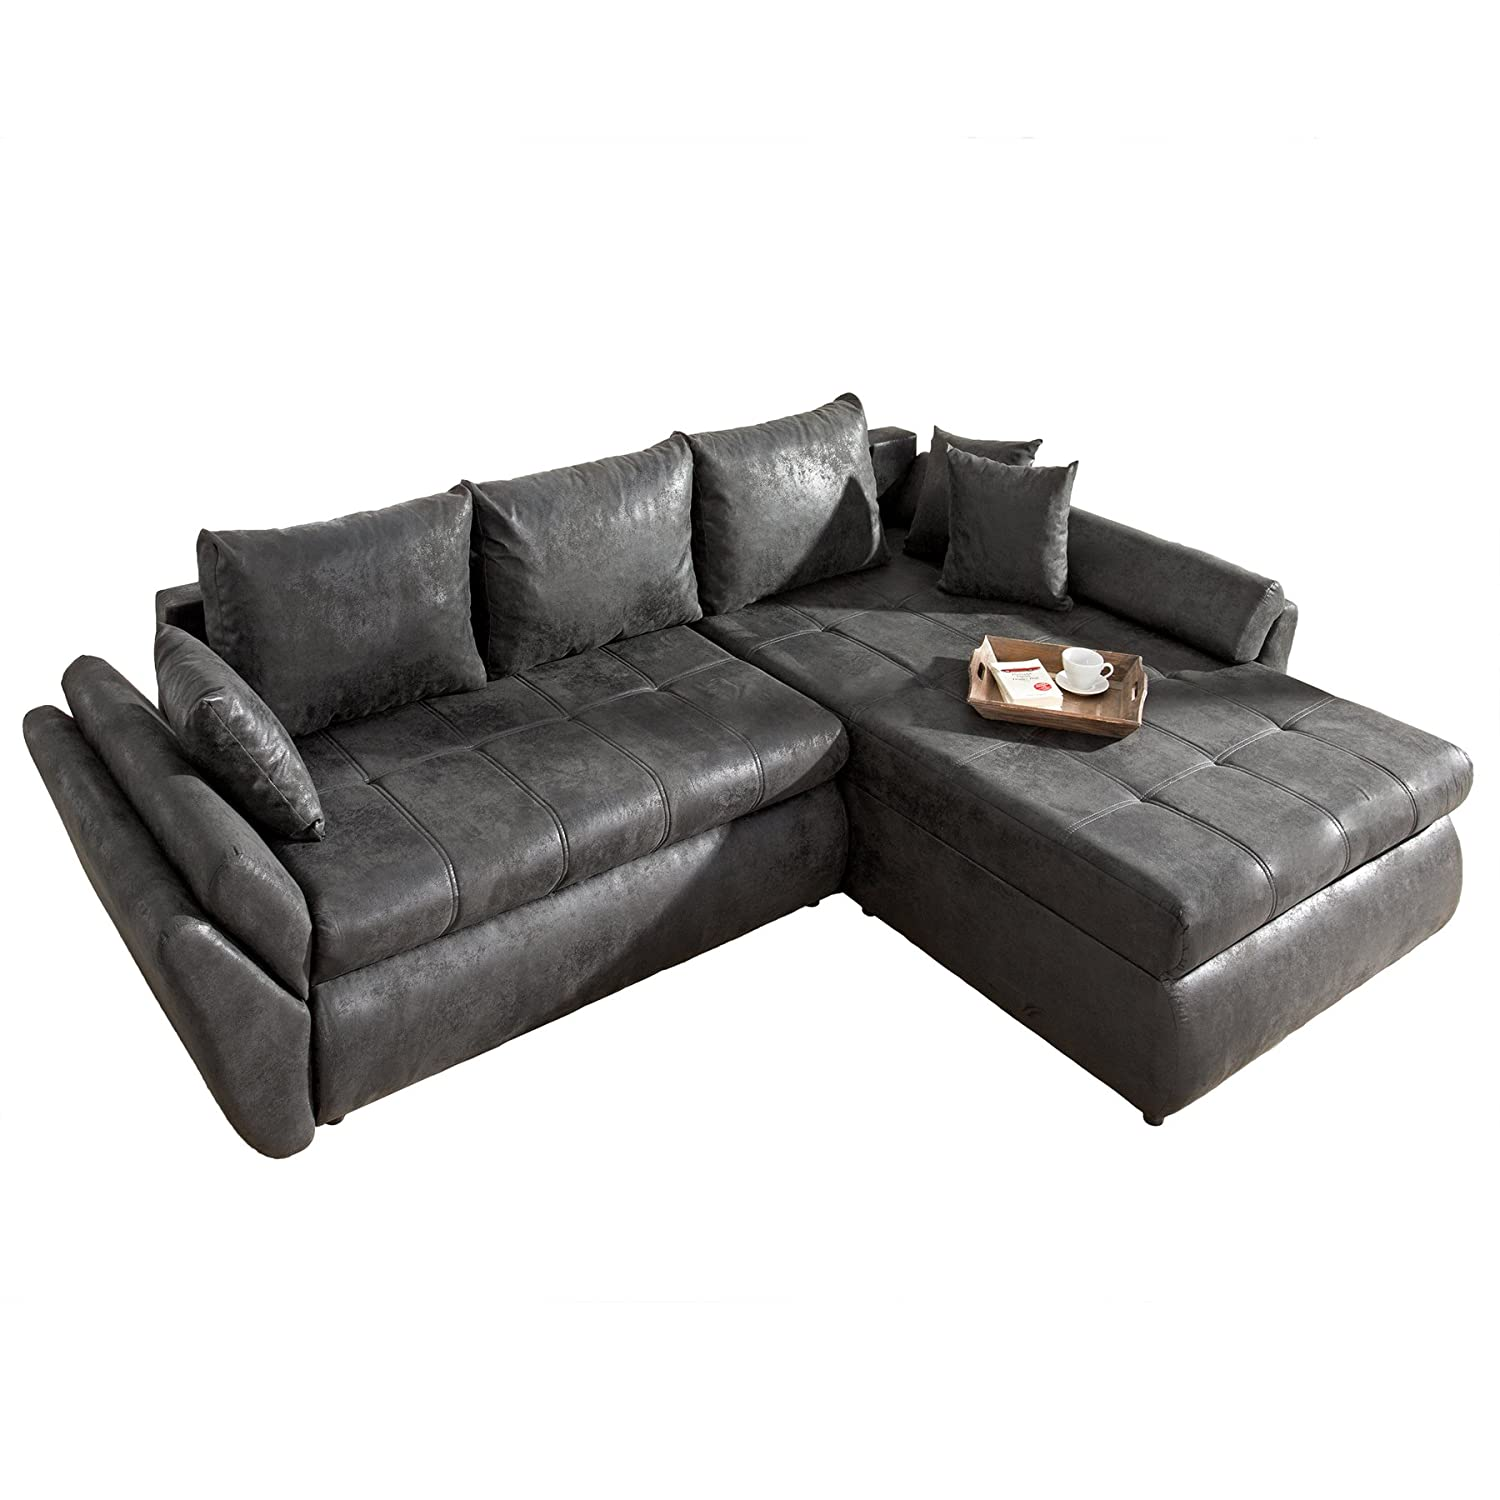 design ecksofa rodeo vintage grau im used look mit schlaffunktion schlafsofa couch g nstig. Black Bedroom Furniture Sets. Home Design Ideas